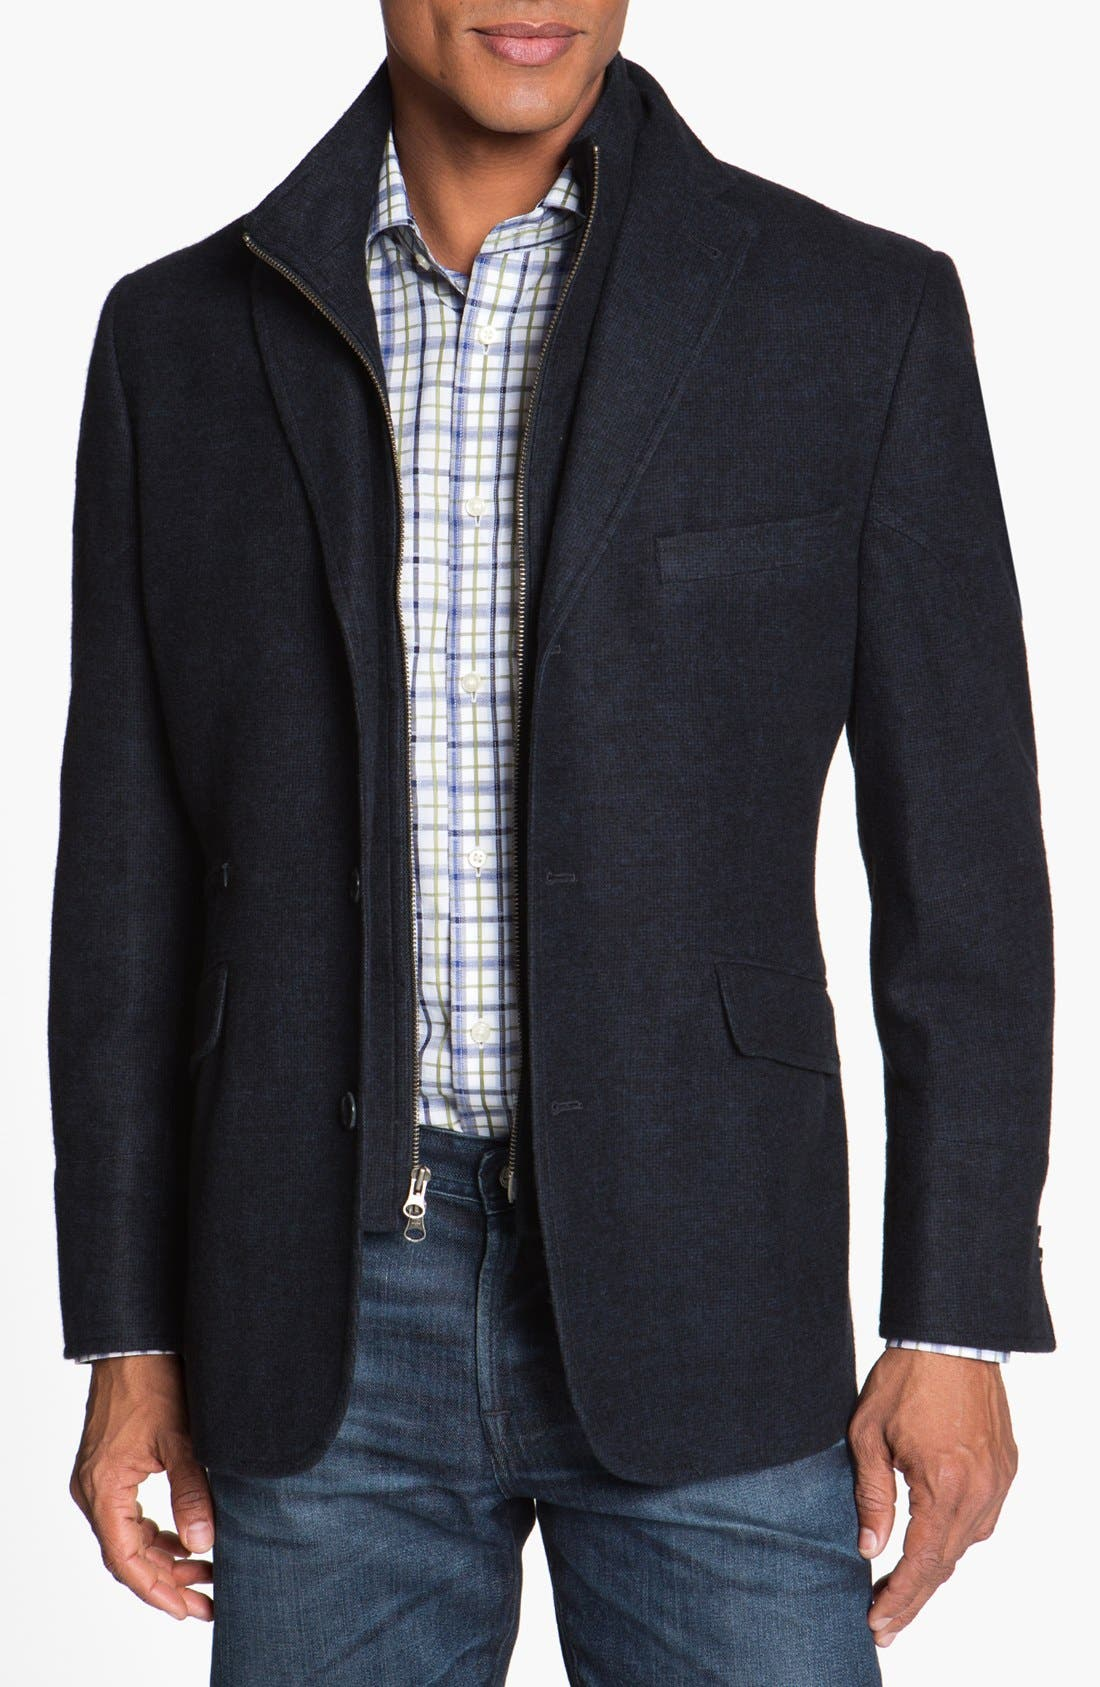 Alternate Image 1 Selected - Kroon 'Ritchie' Sportcoat